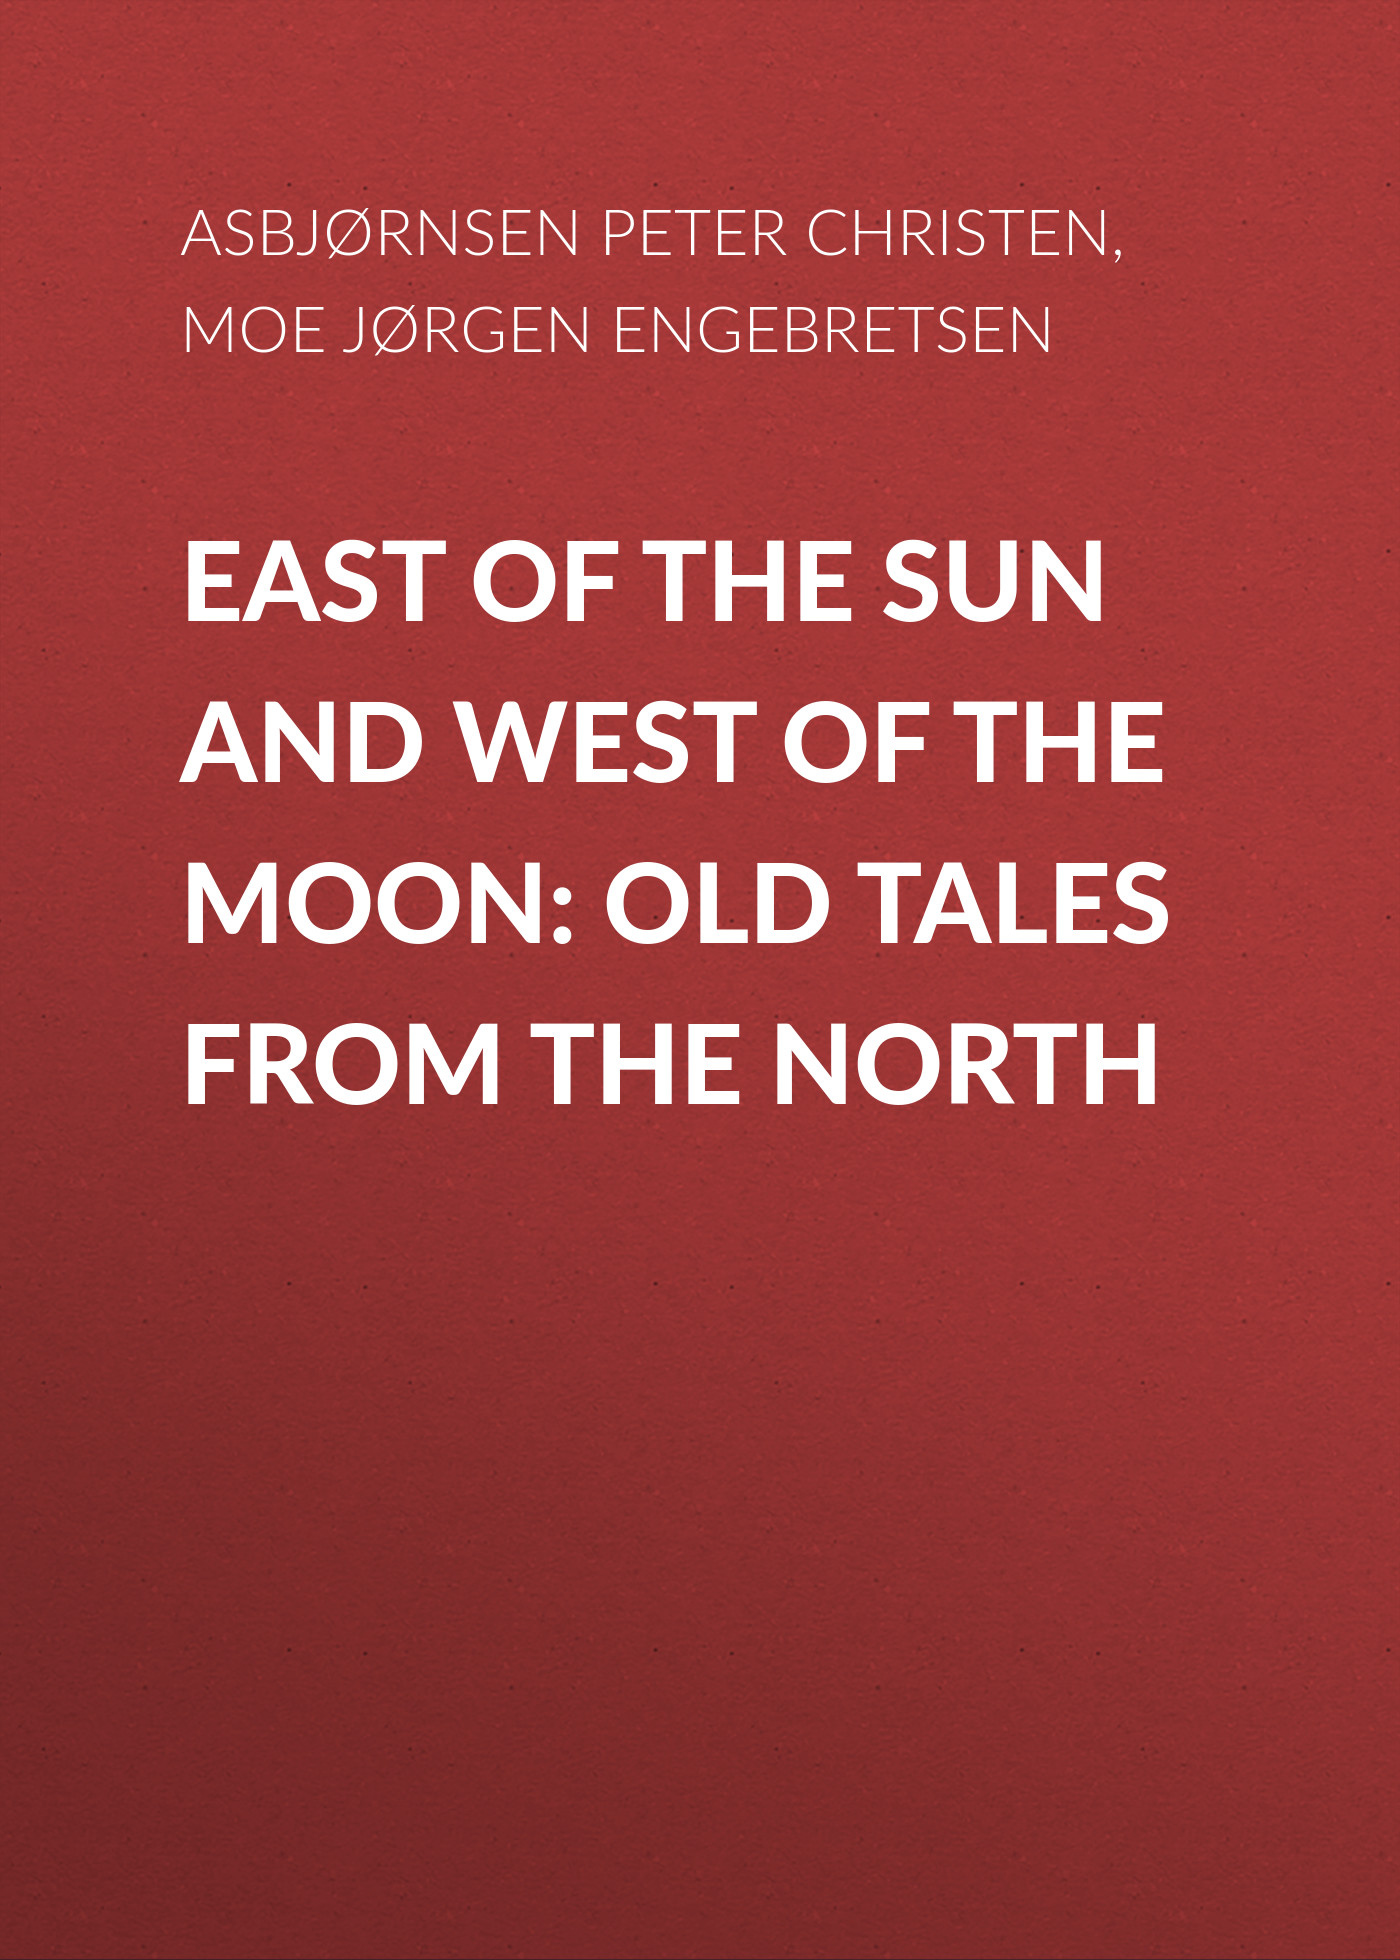 Asbjørnsen Peter Christen East of the Sun and West of the Moon: Old Tales from the North бра favourite idilia 1191 1w